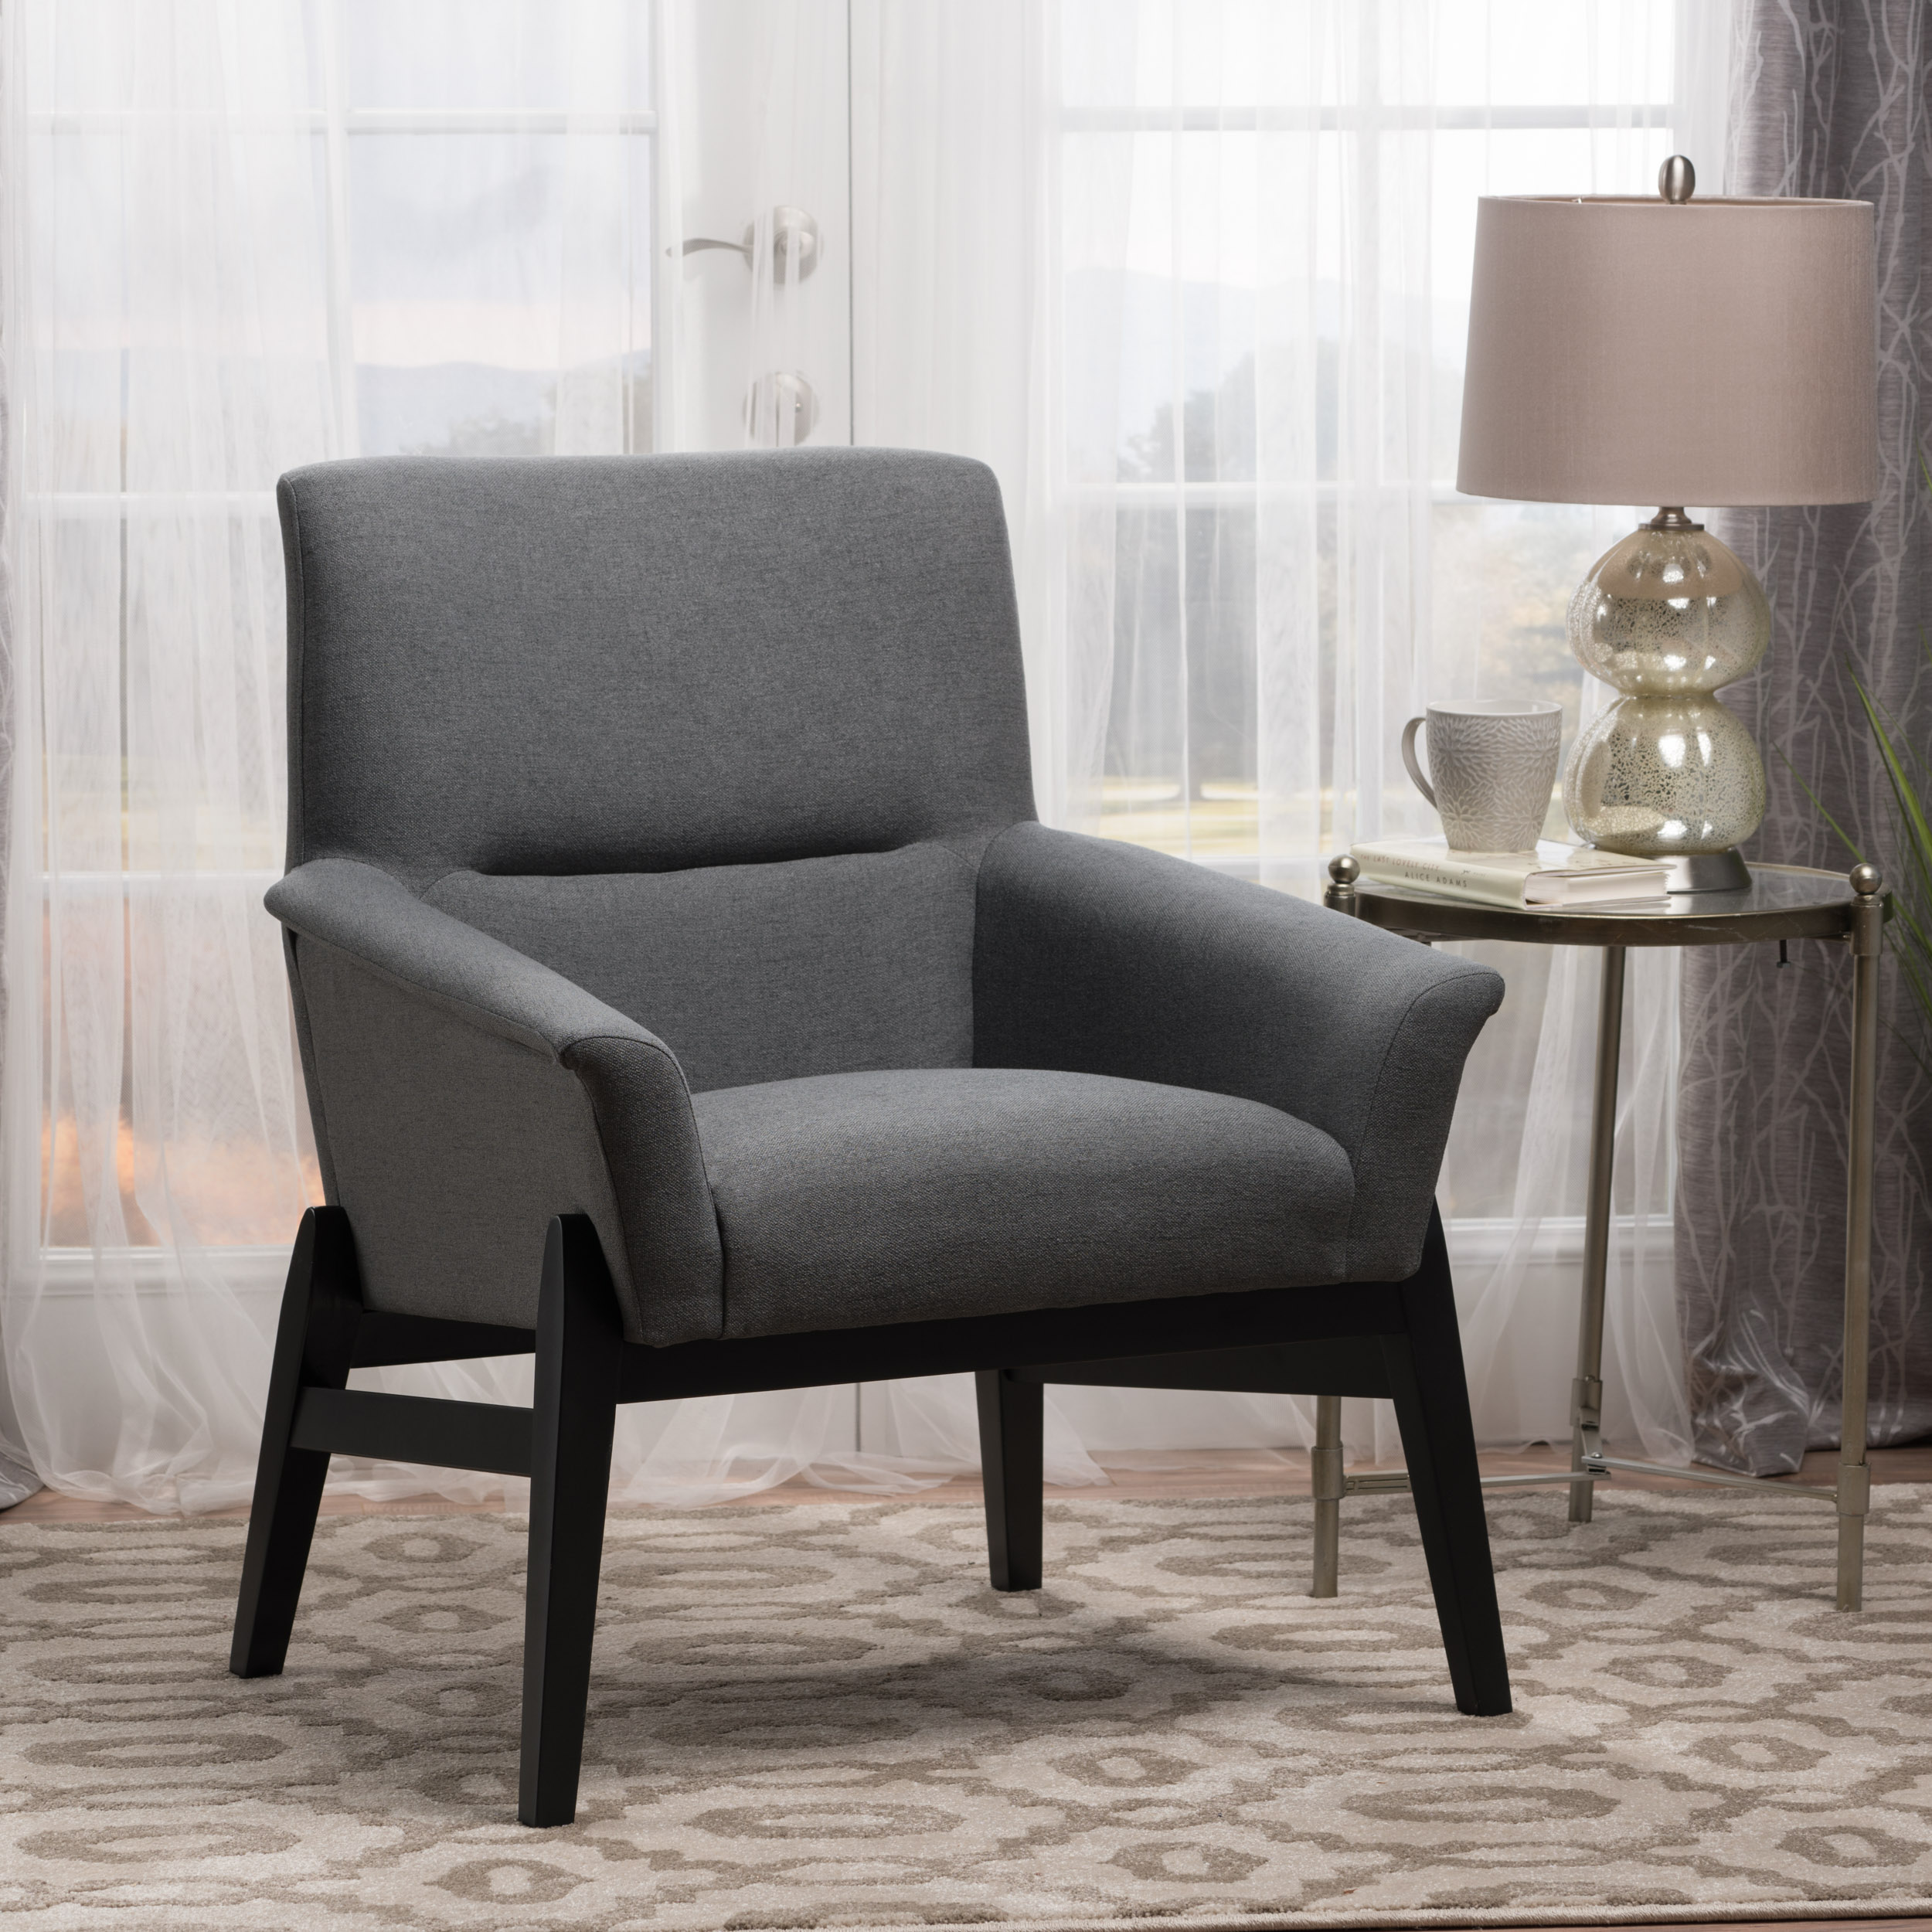 Noble House Modern Fabric Club Chair,Charcoal